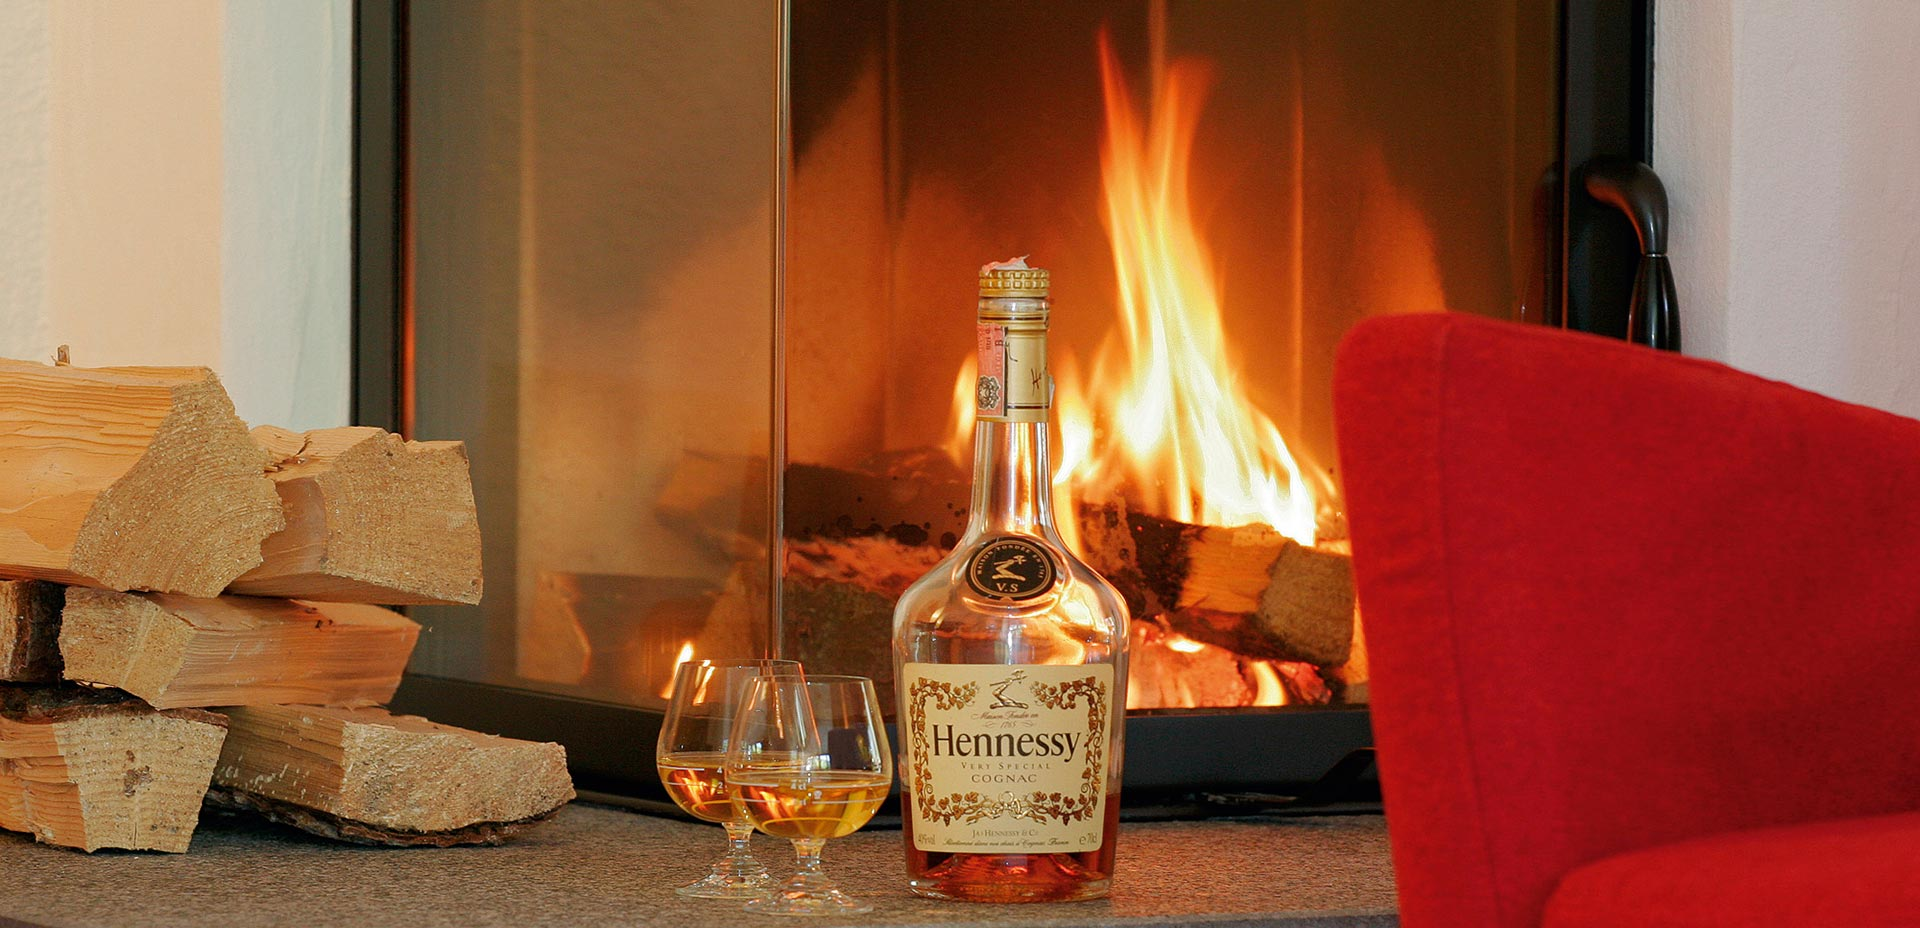 Cozy atmosphere next to the fire, with a glass of good Cognac